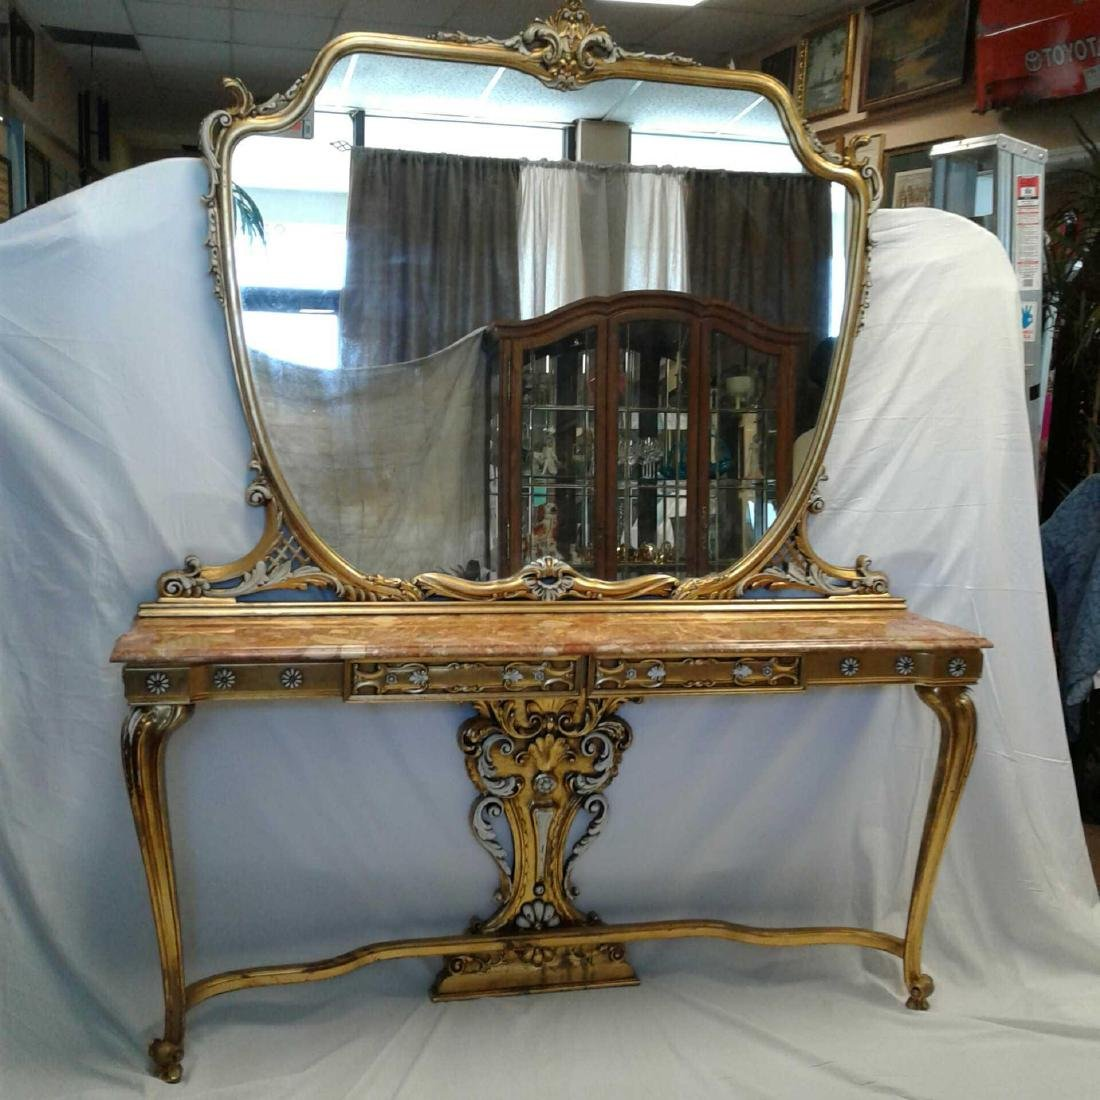 Late Baroque/Rococo Style Console Table with Mirror - 4